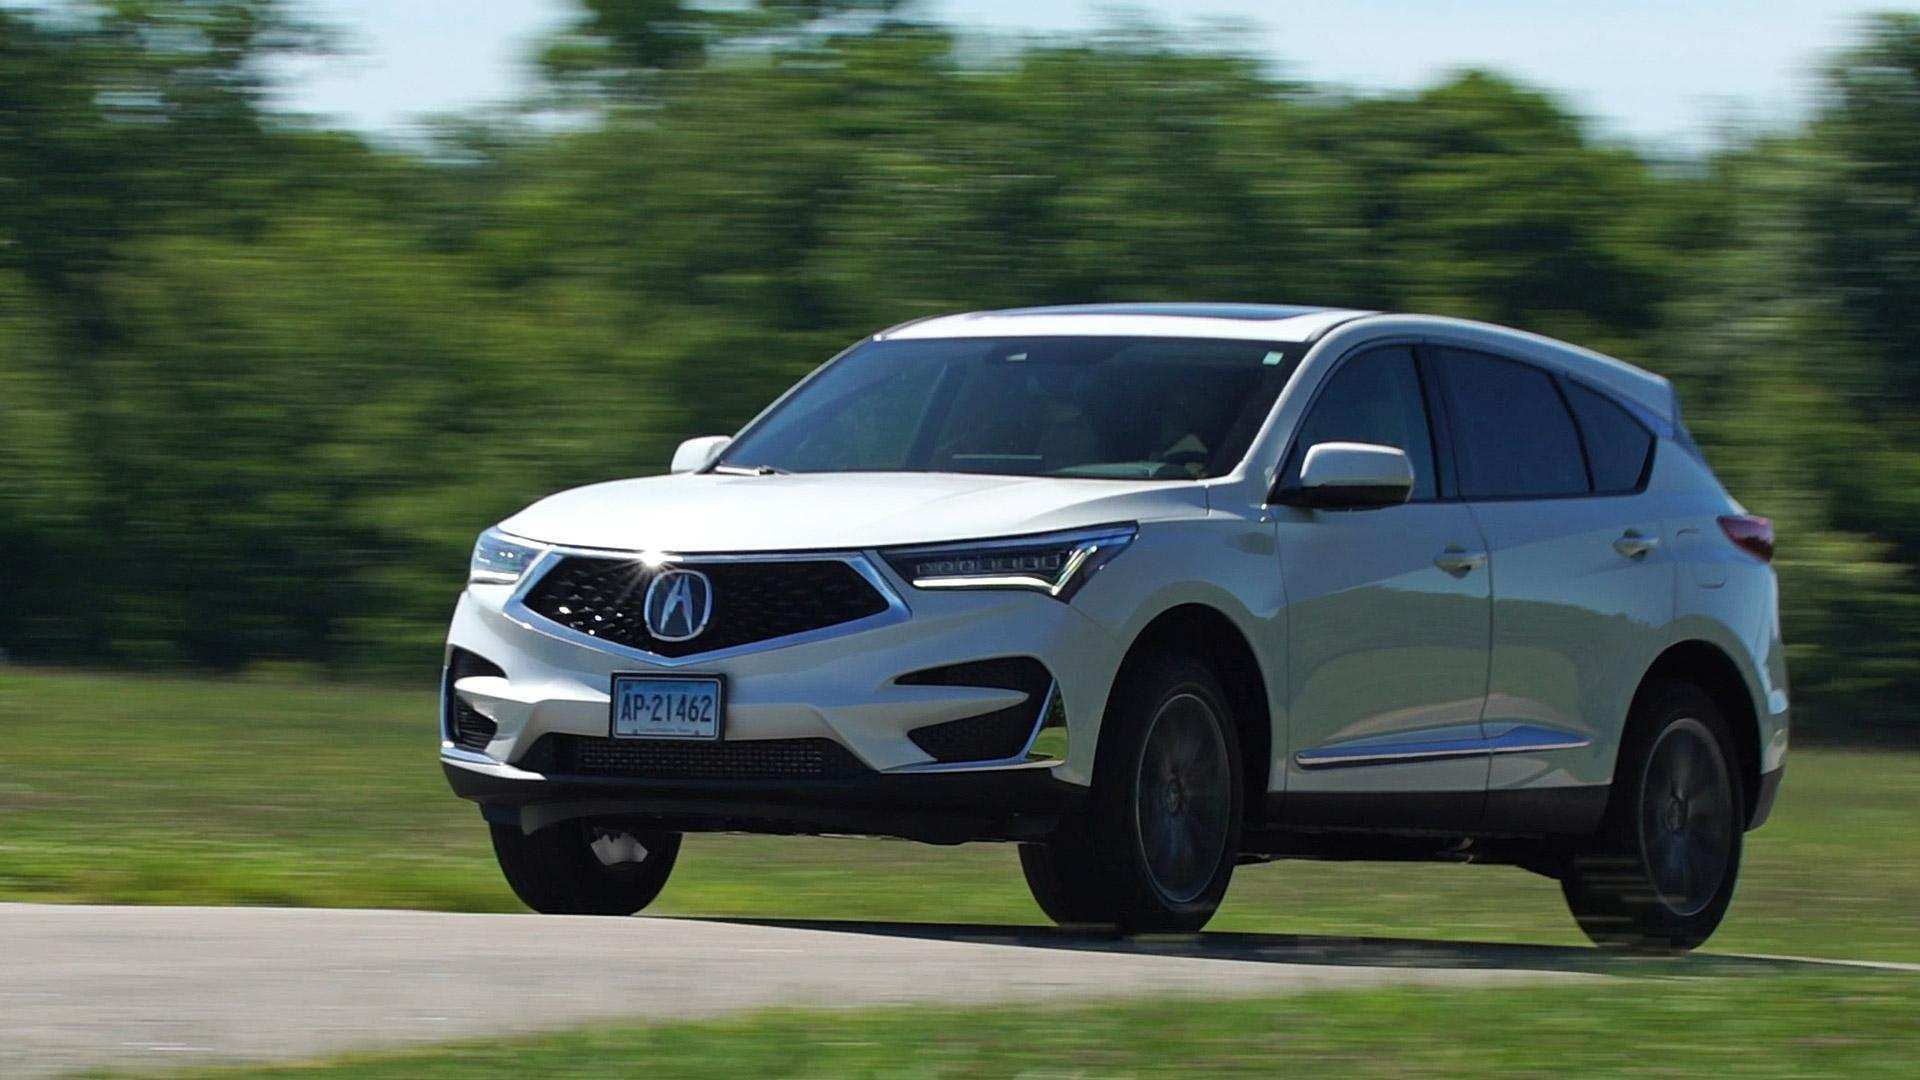 36 Best Review New 2019 Acura V6 Turbo First Drive Price Performance And Review Speed Test by New 2019 Acura V6 Turbo First Drive Price Performance And Review